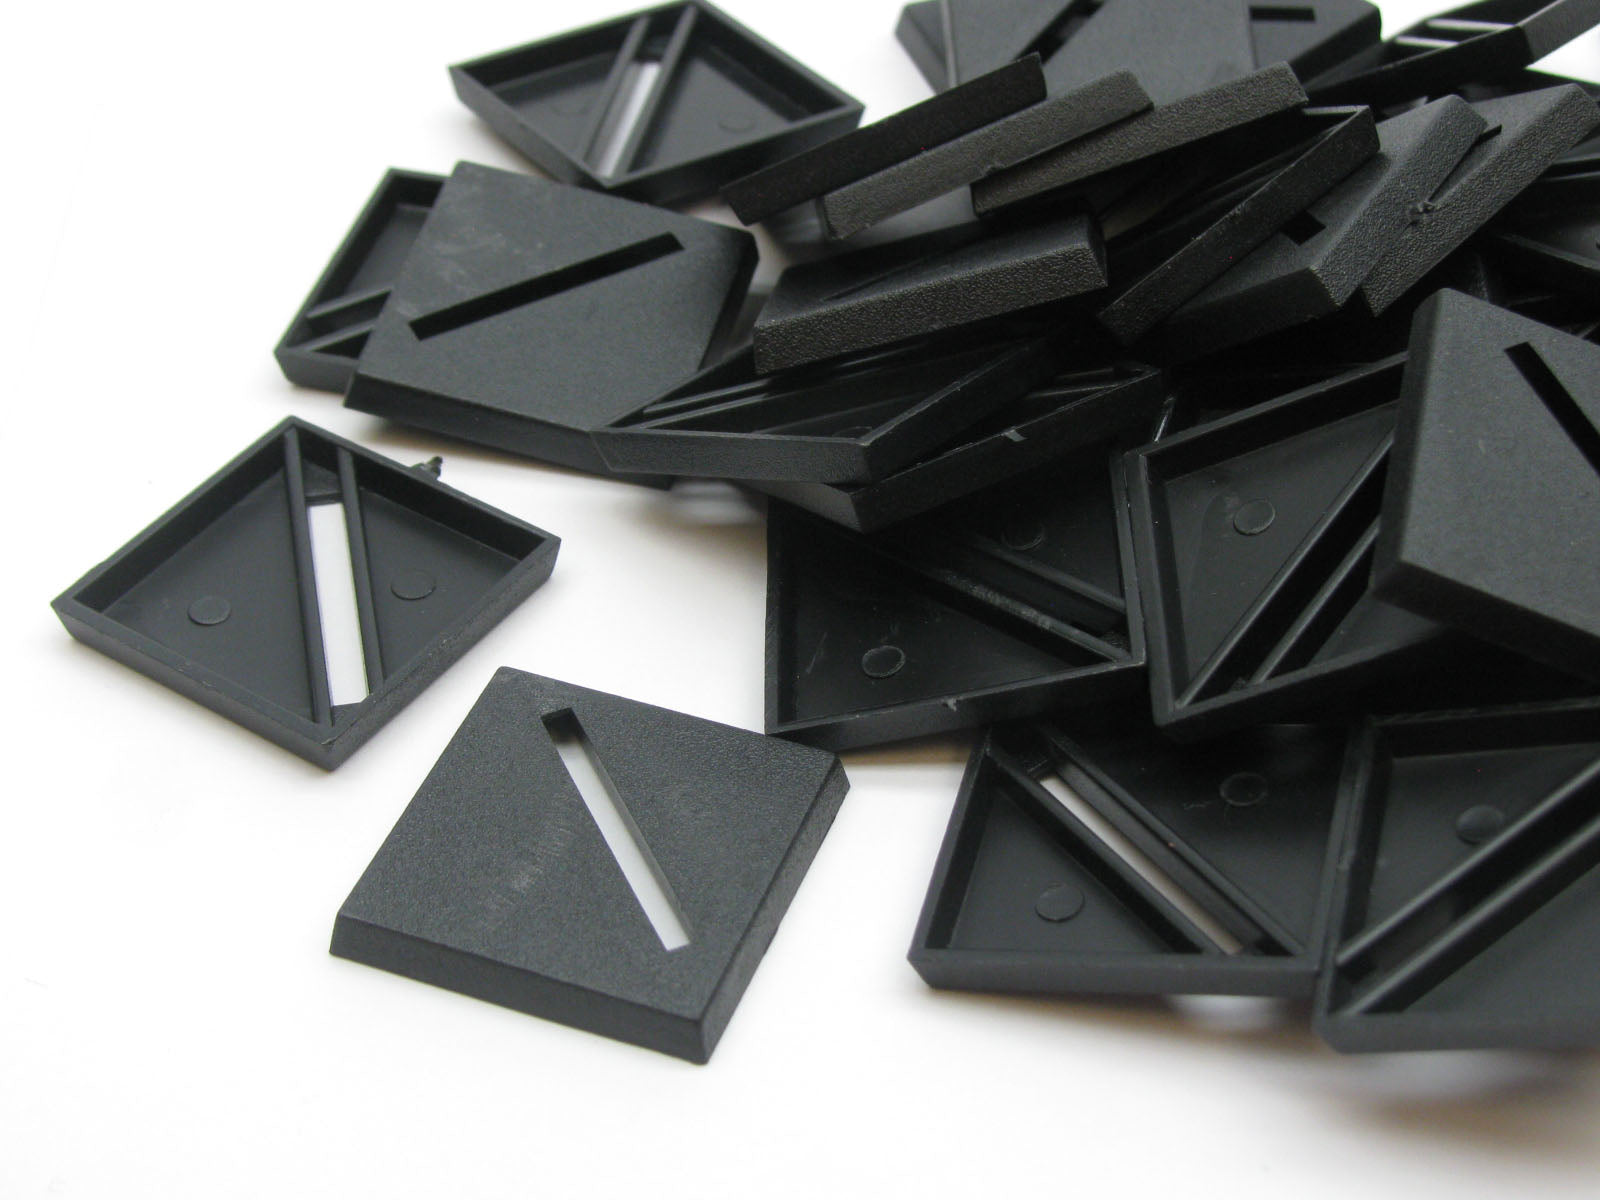 Chessex 25mm Black Plastic Round Slotted Bases #08607F for RPG Miniatures 50